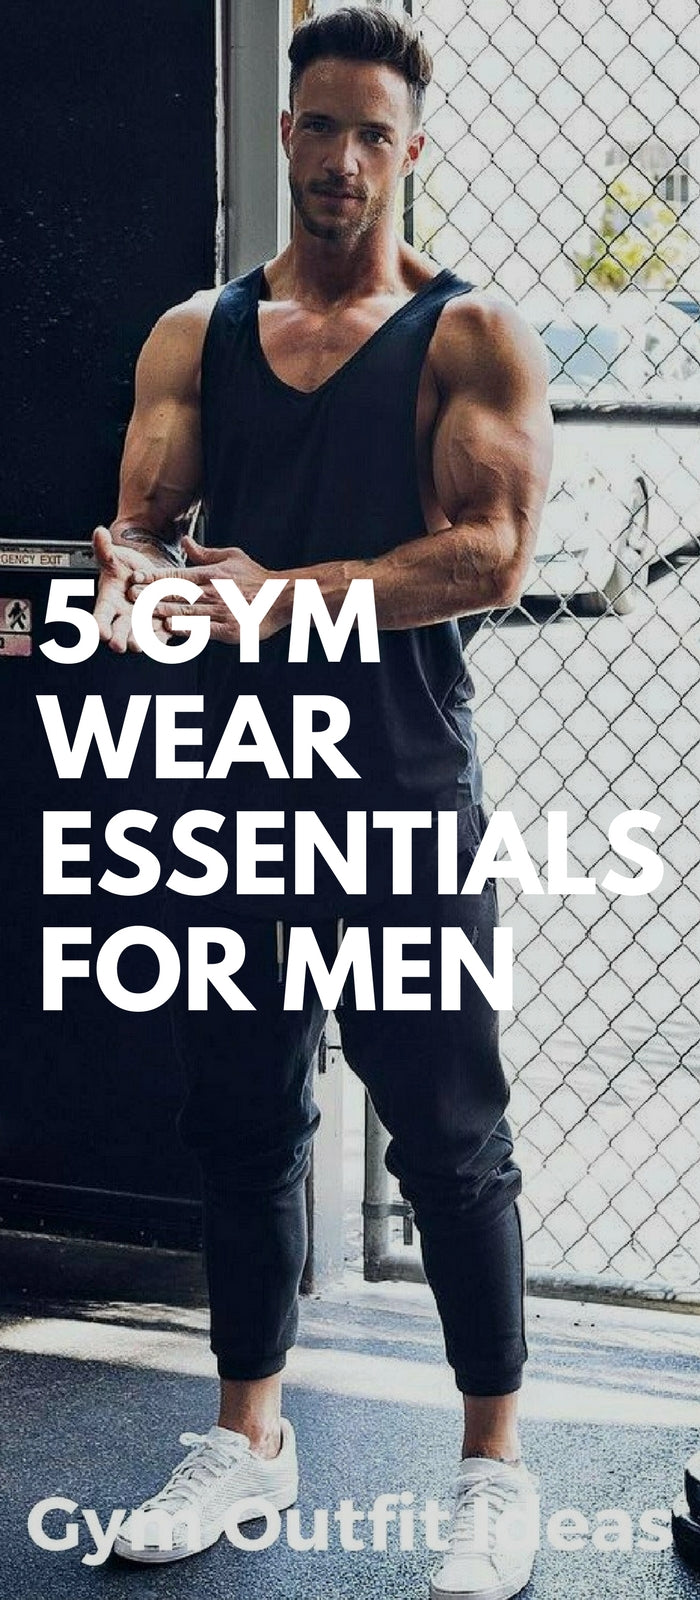 5 gym wear essentials for men – lifestyleps